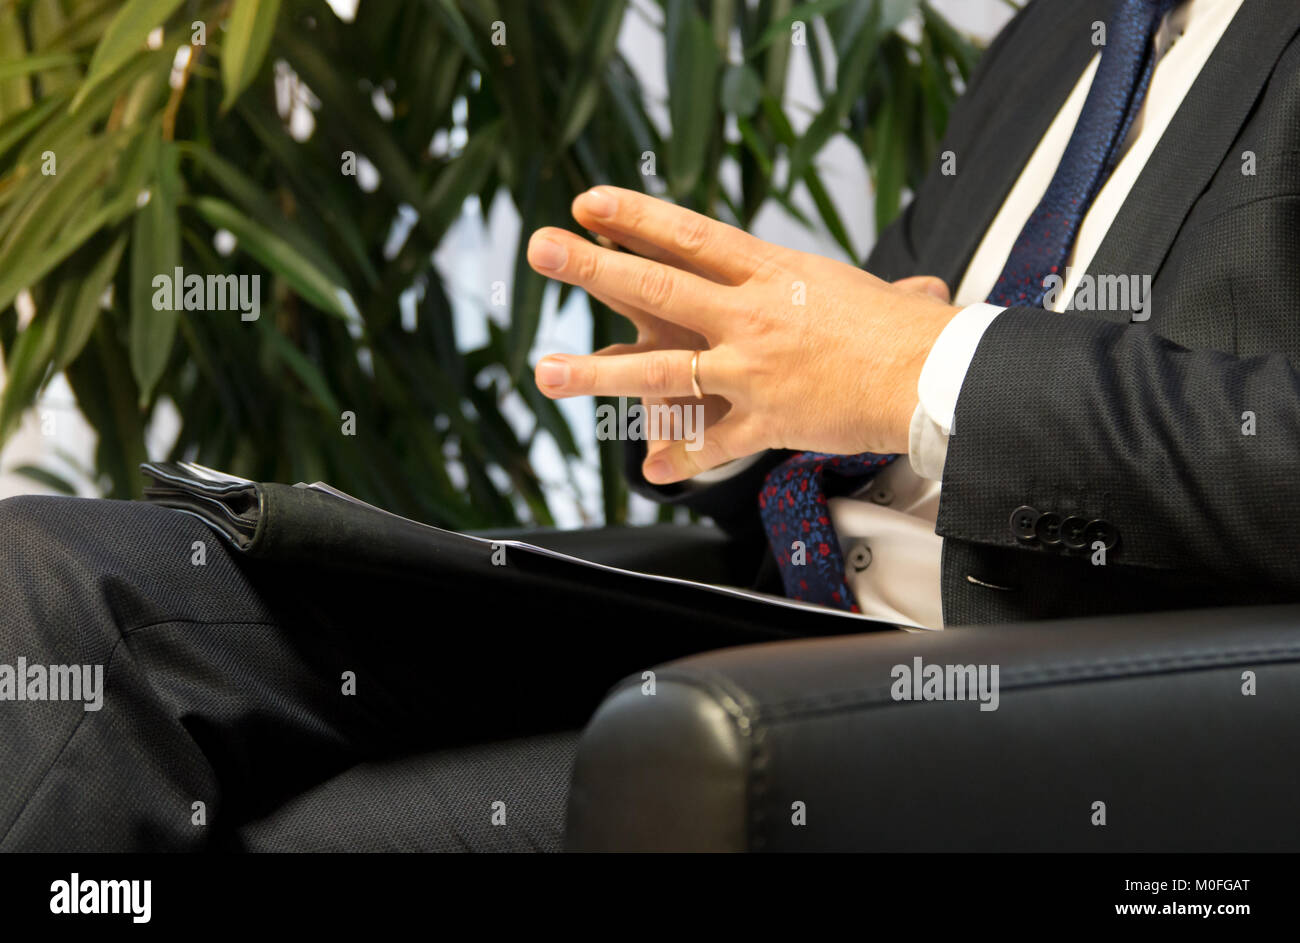 Businessman boss or politician giving interview. - Stock Image